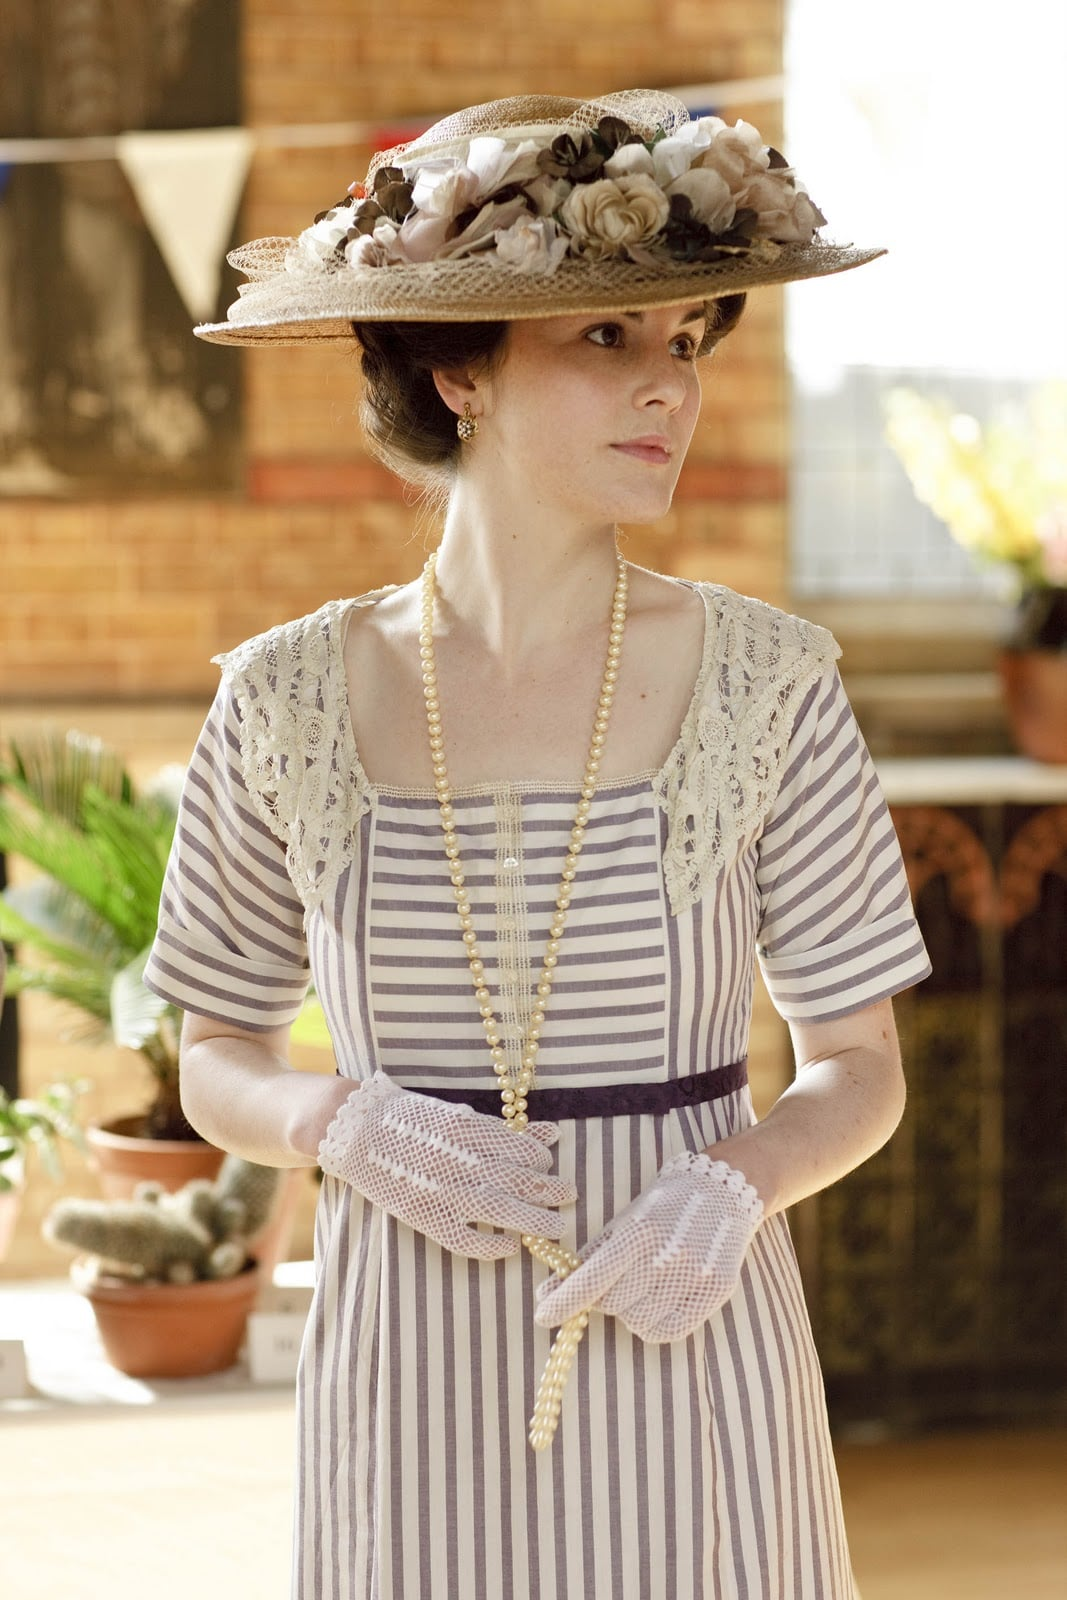 Hats, usually topped with flowers or feathers, were de rigueur during the Edwardian era.  Source: ITV